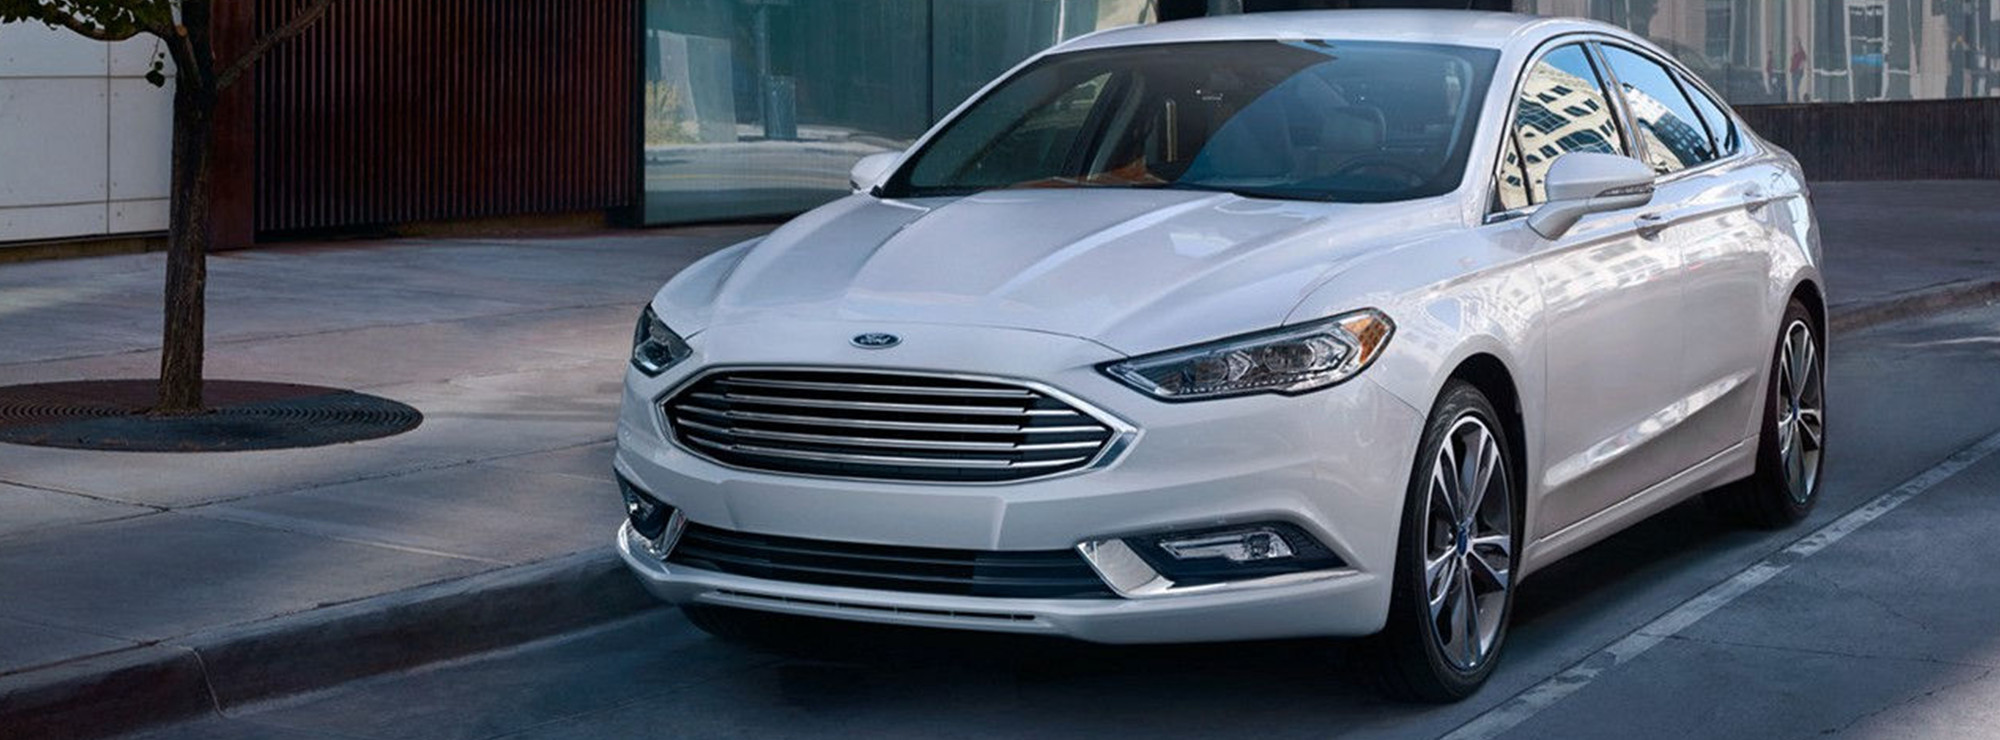 2017 Ford Fusion in Lewes